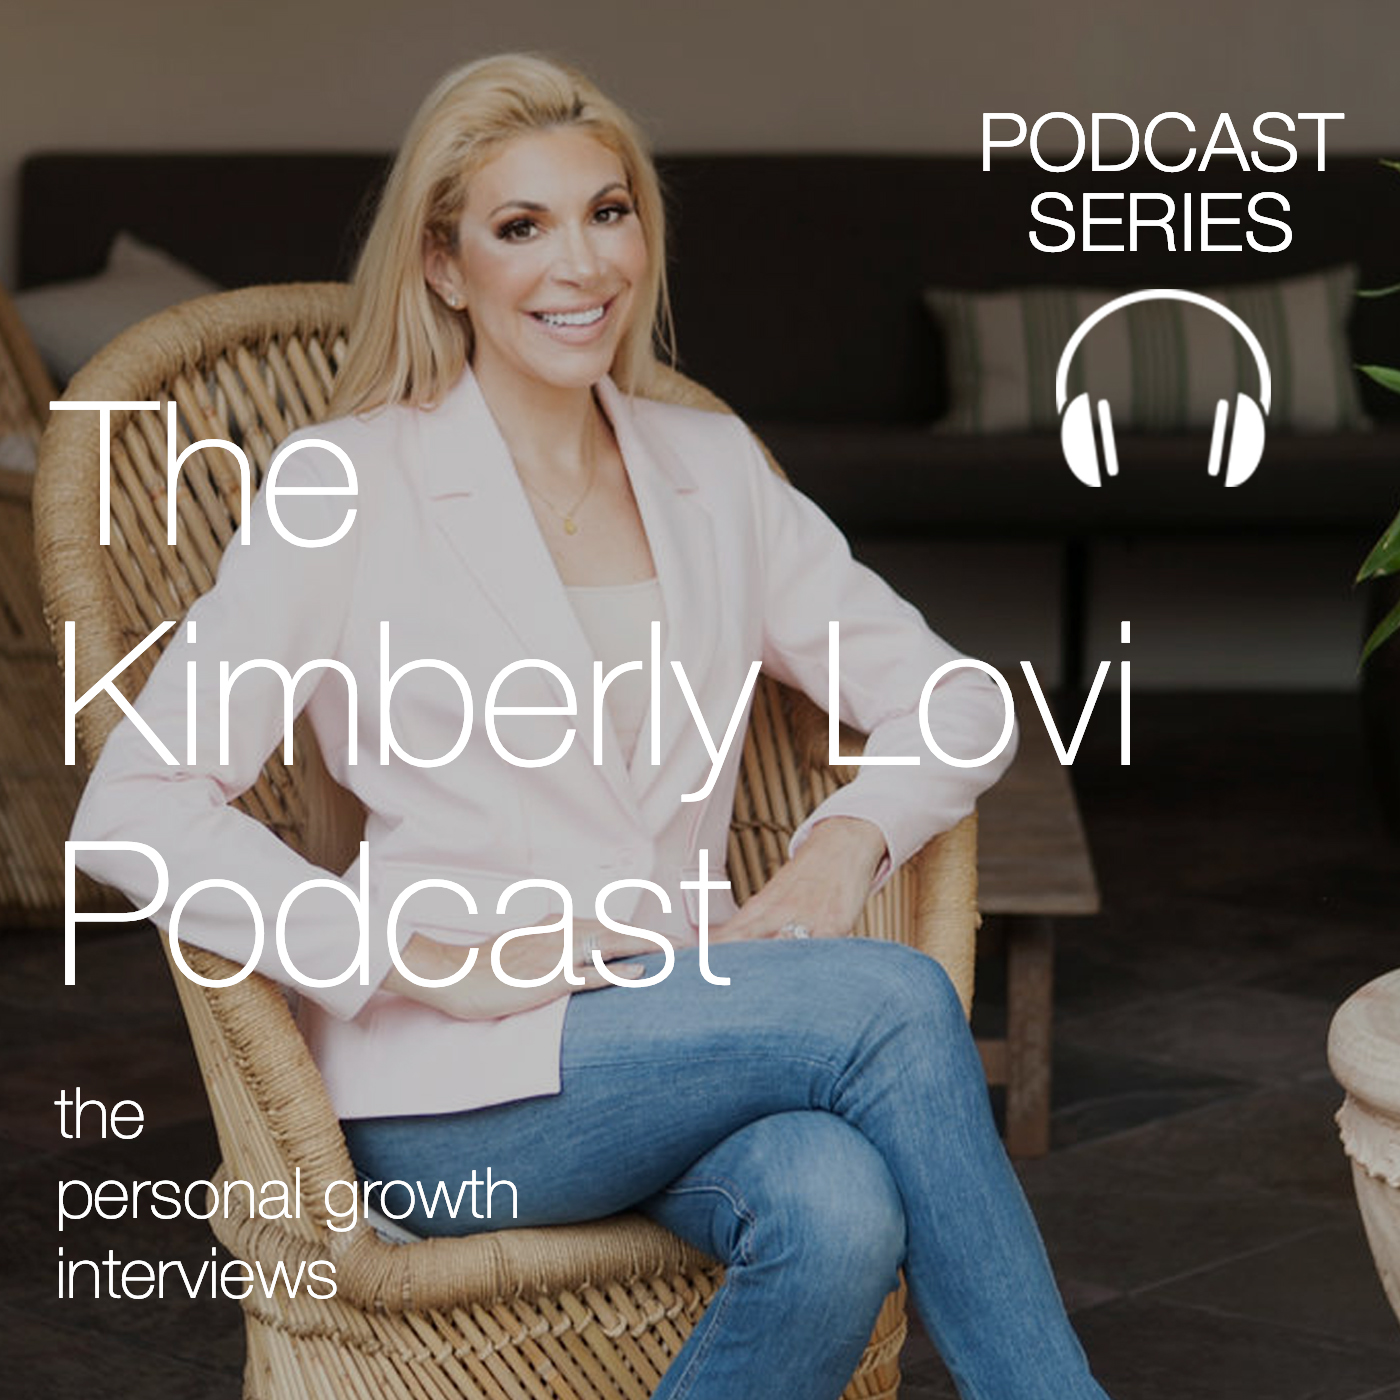 The Kimberly Lovi Podcast